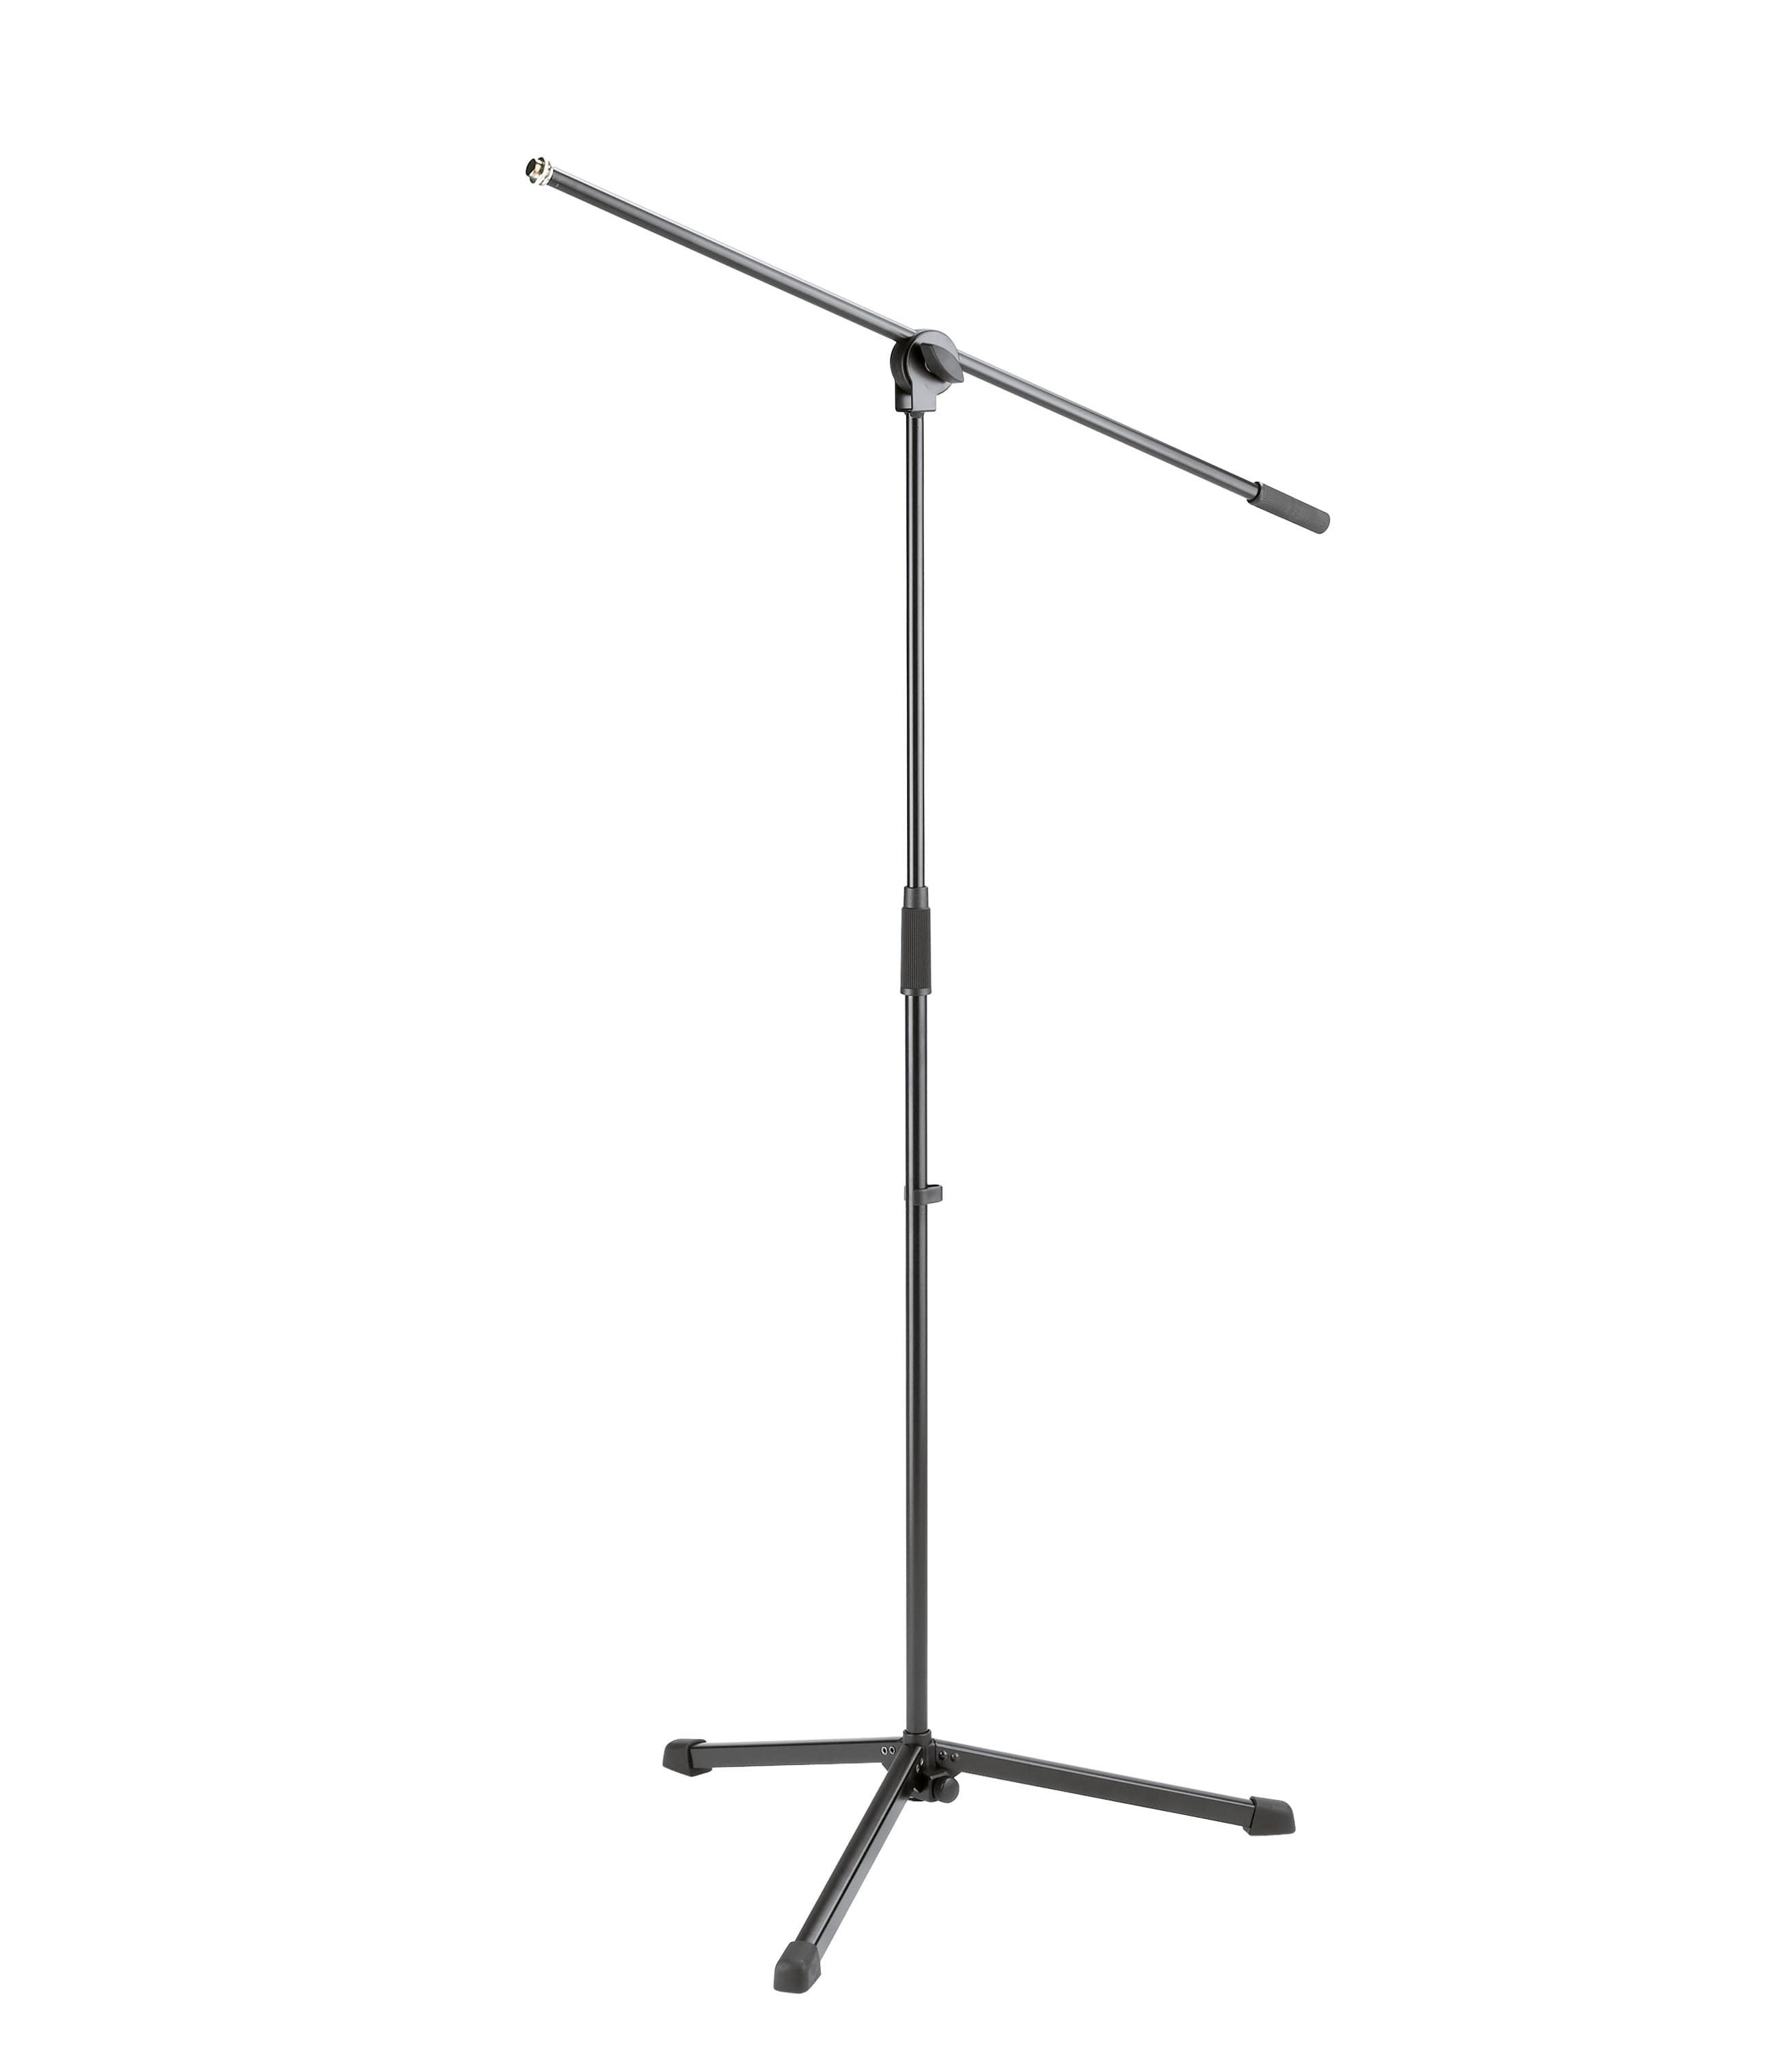 K&M - 25400 500 55 low priced microphone stand w boom - Melody House Musical Instruments